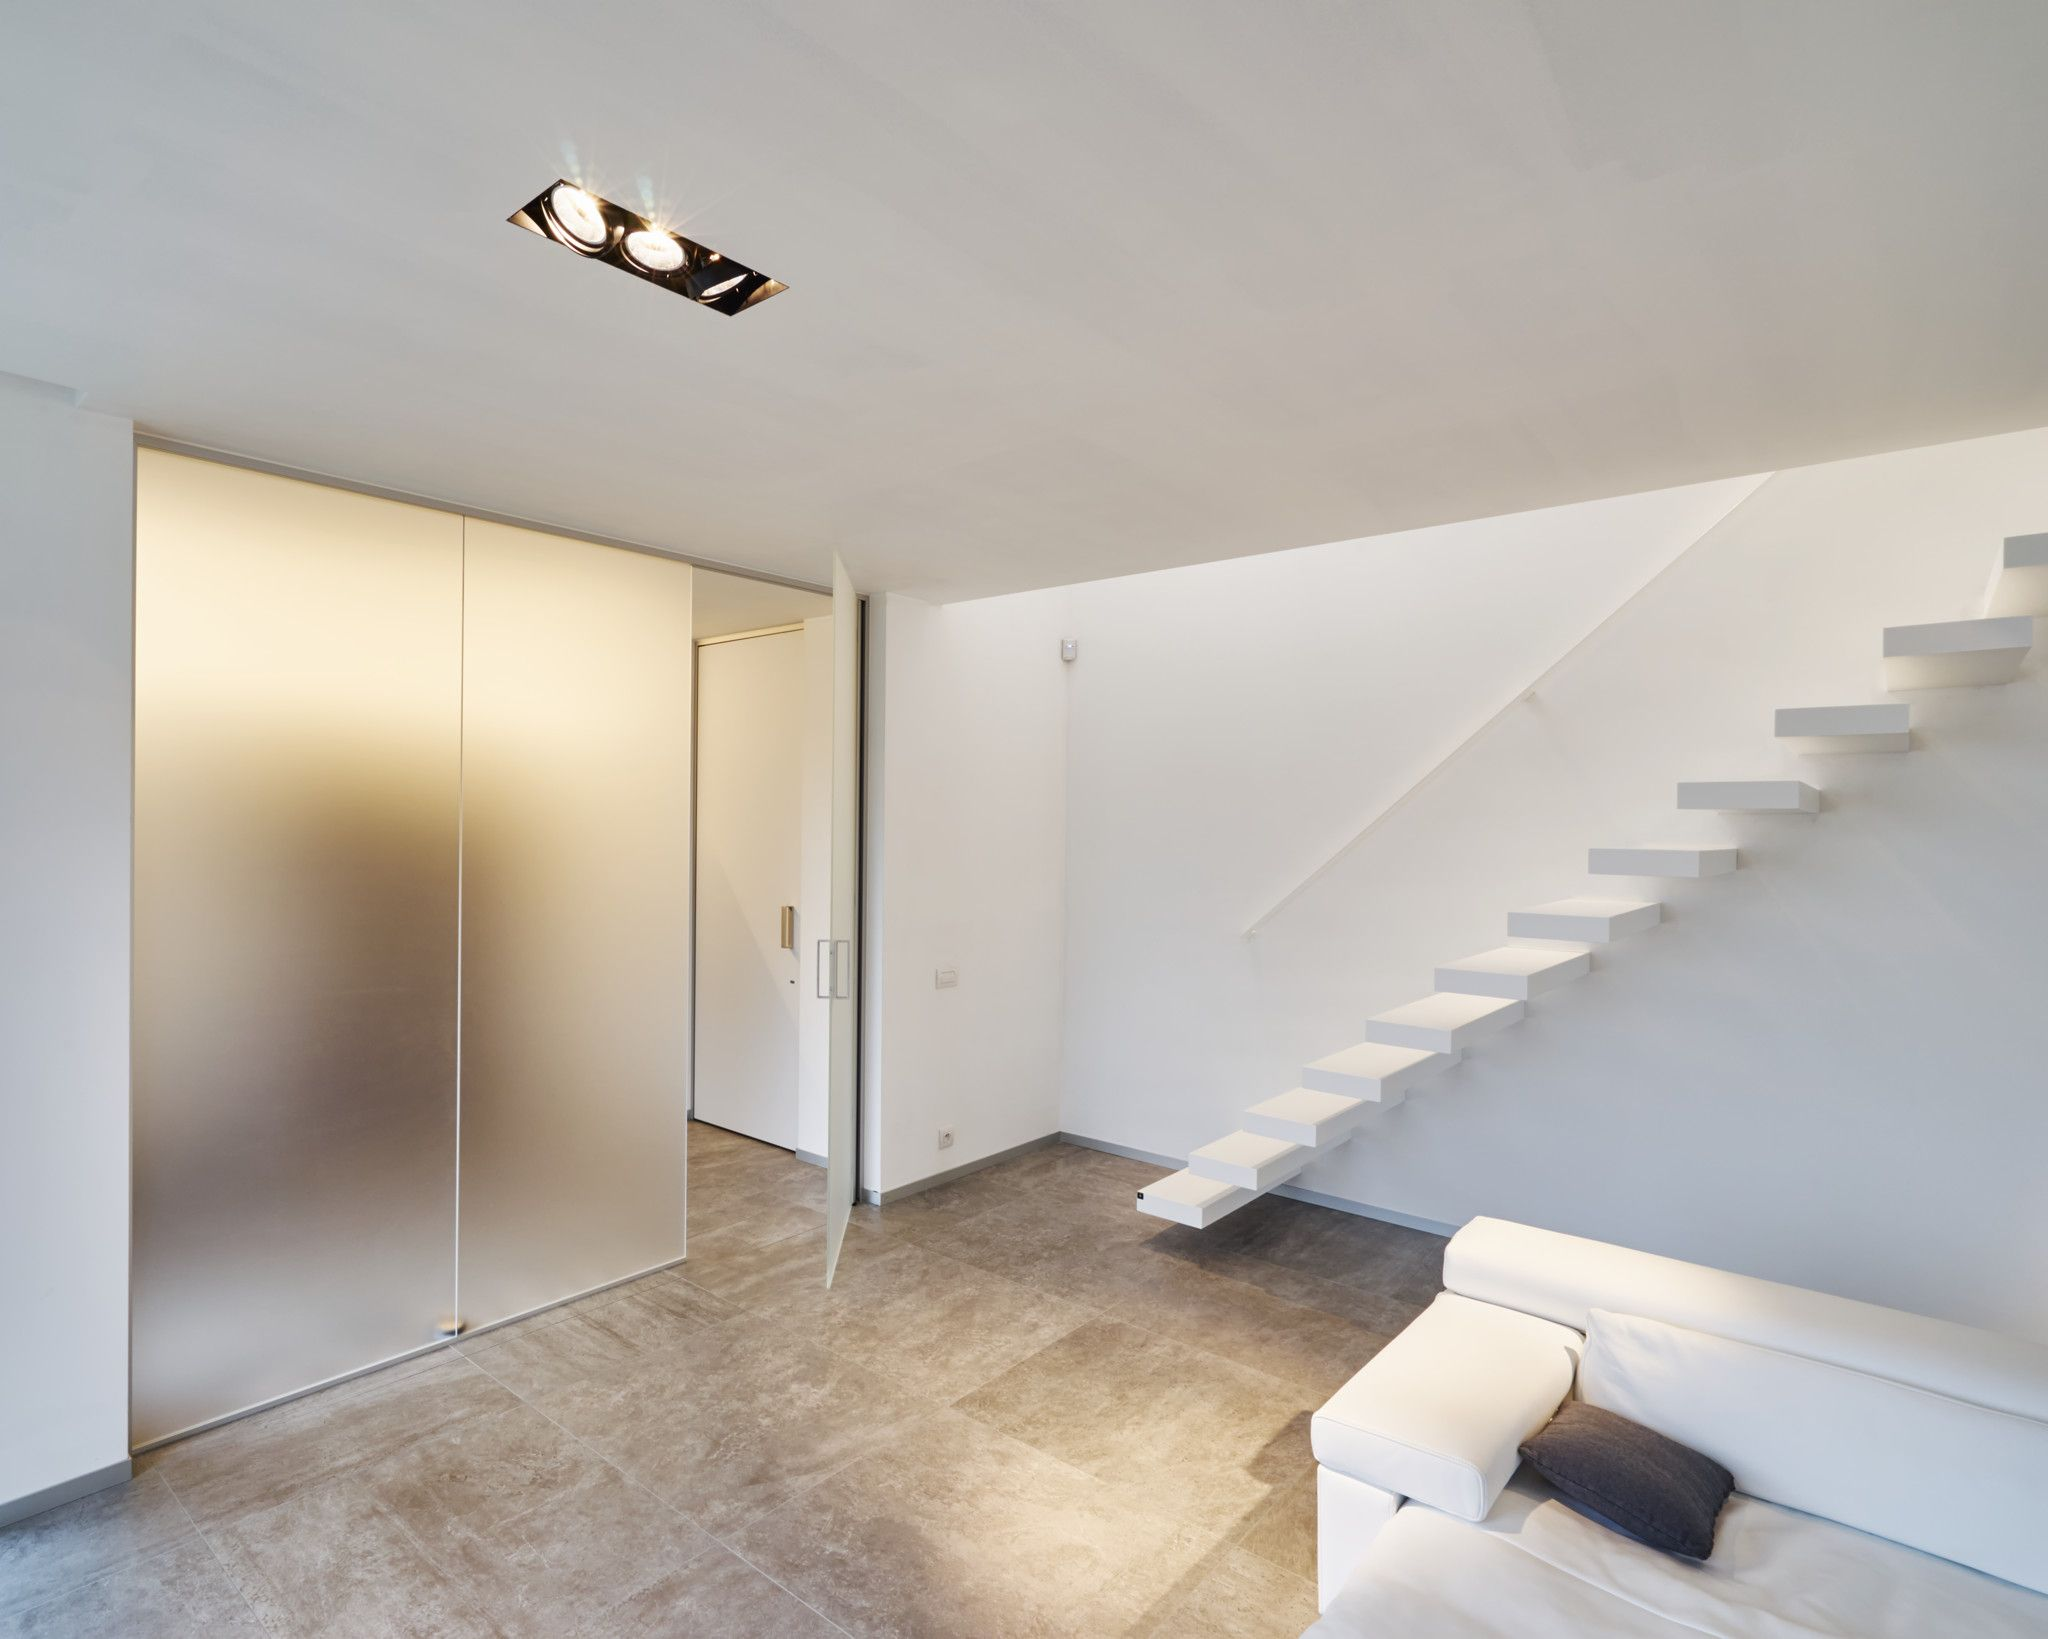 Modern Frosted Glass Door With Fixed Glass Partitions Next To It